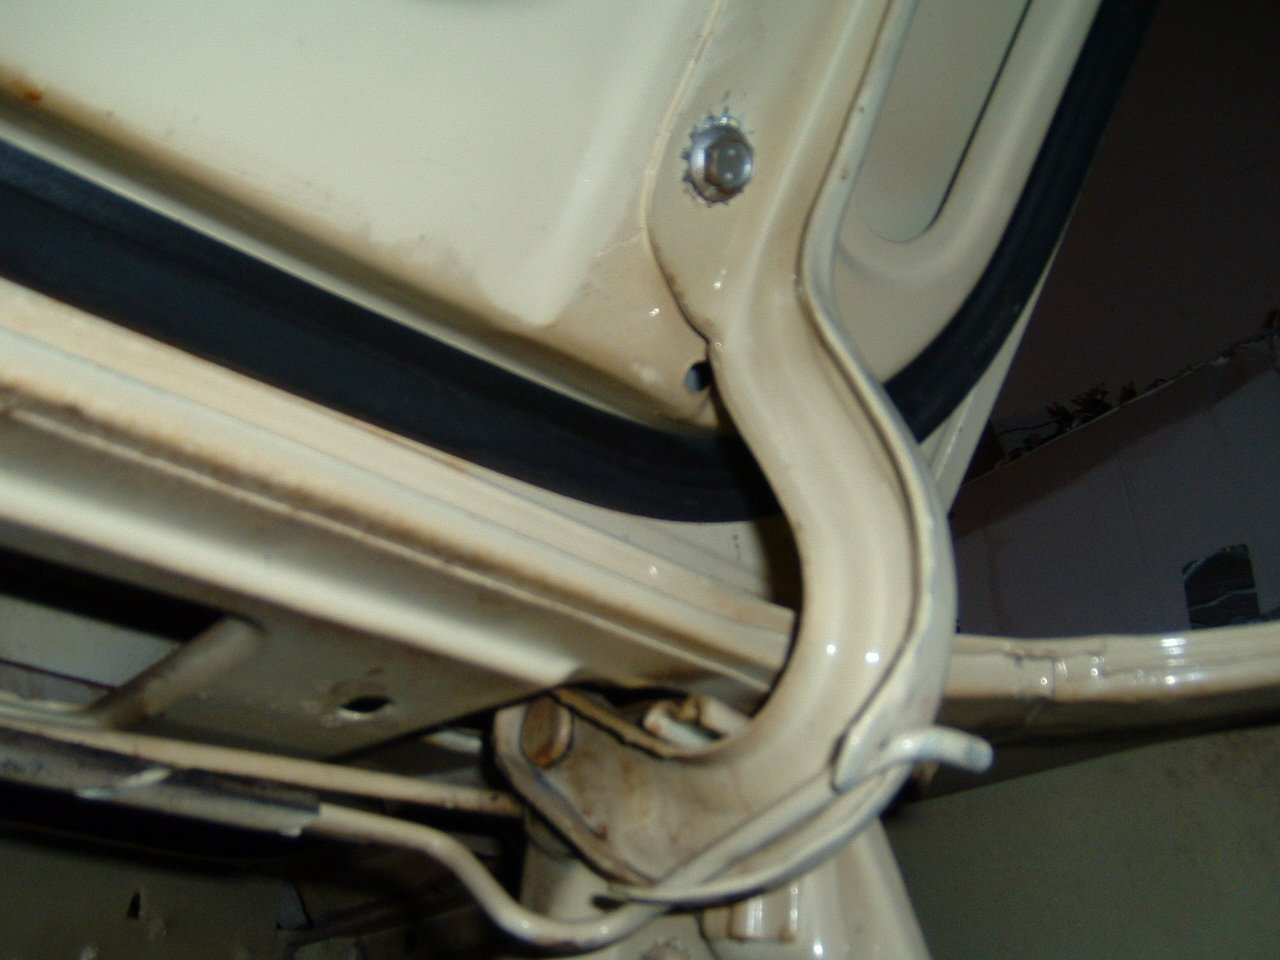 Ford Fort Worth >> 1965 Mustang How Are The Trunk Tension Bars Installed? - Ford Mustang Forum